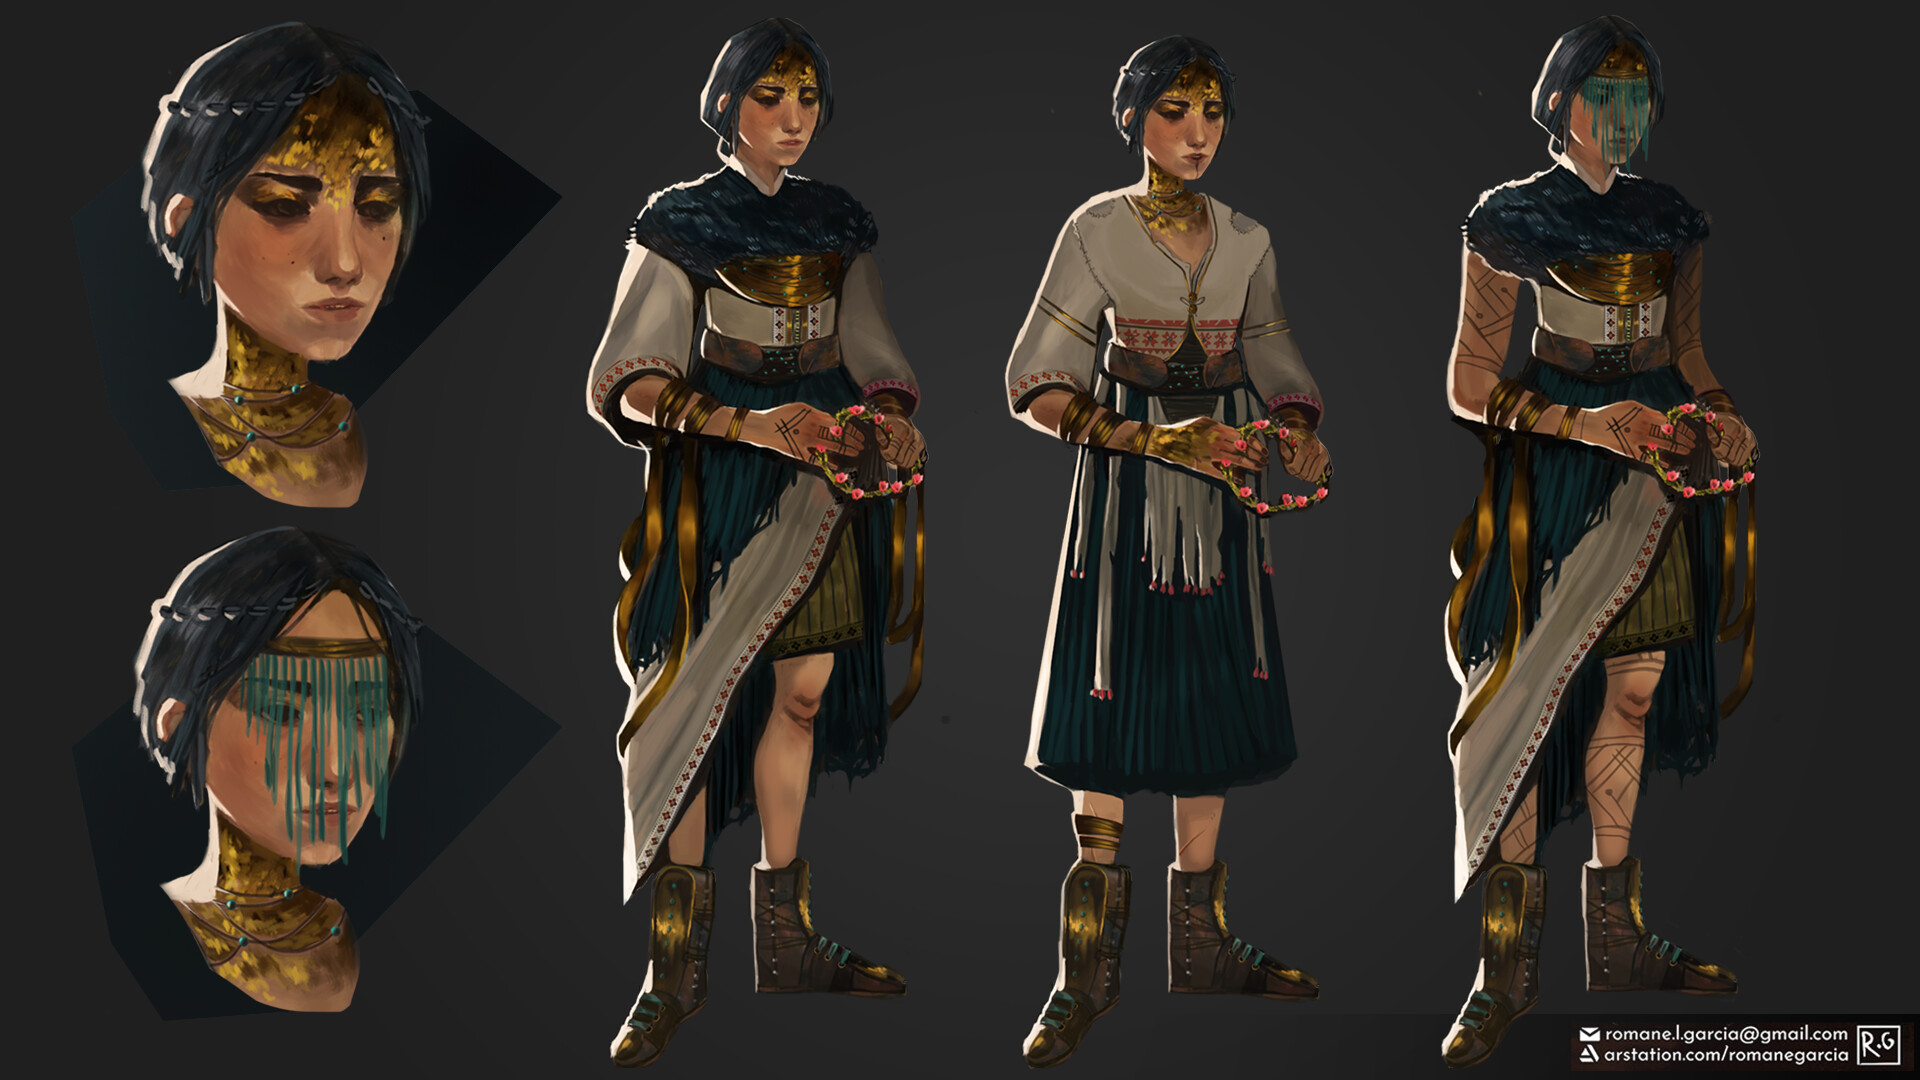 Character design variations